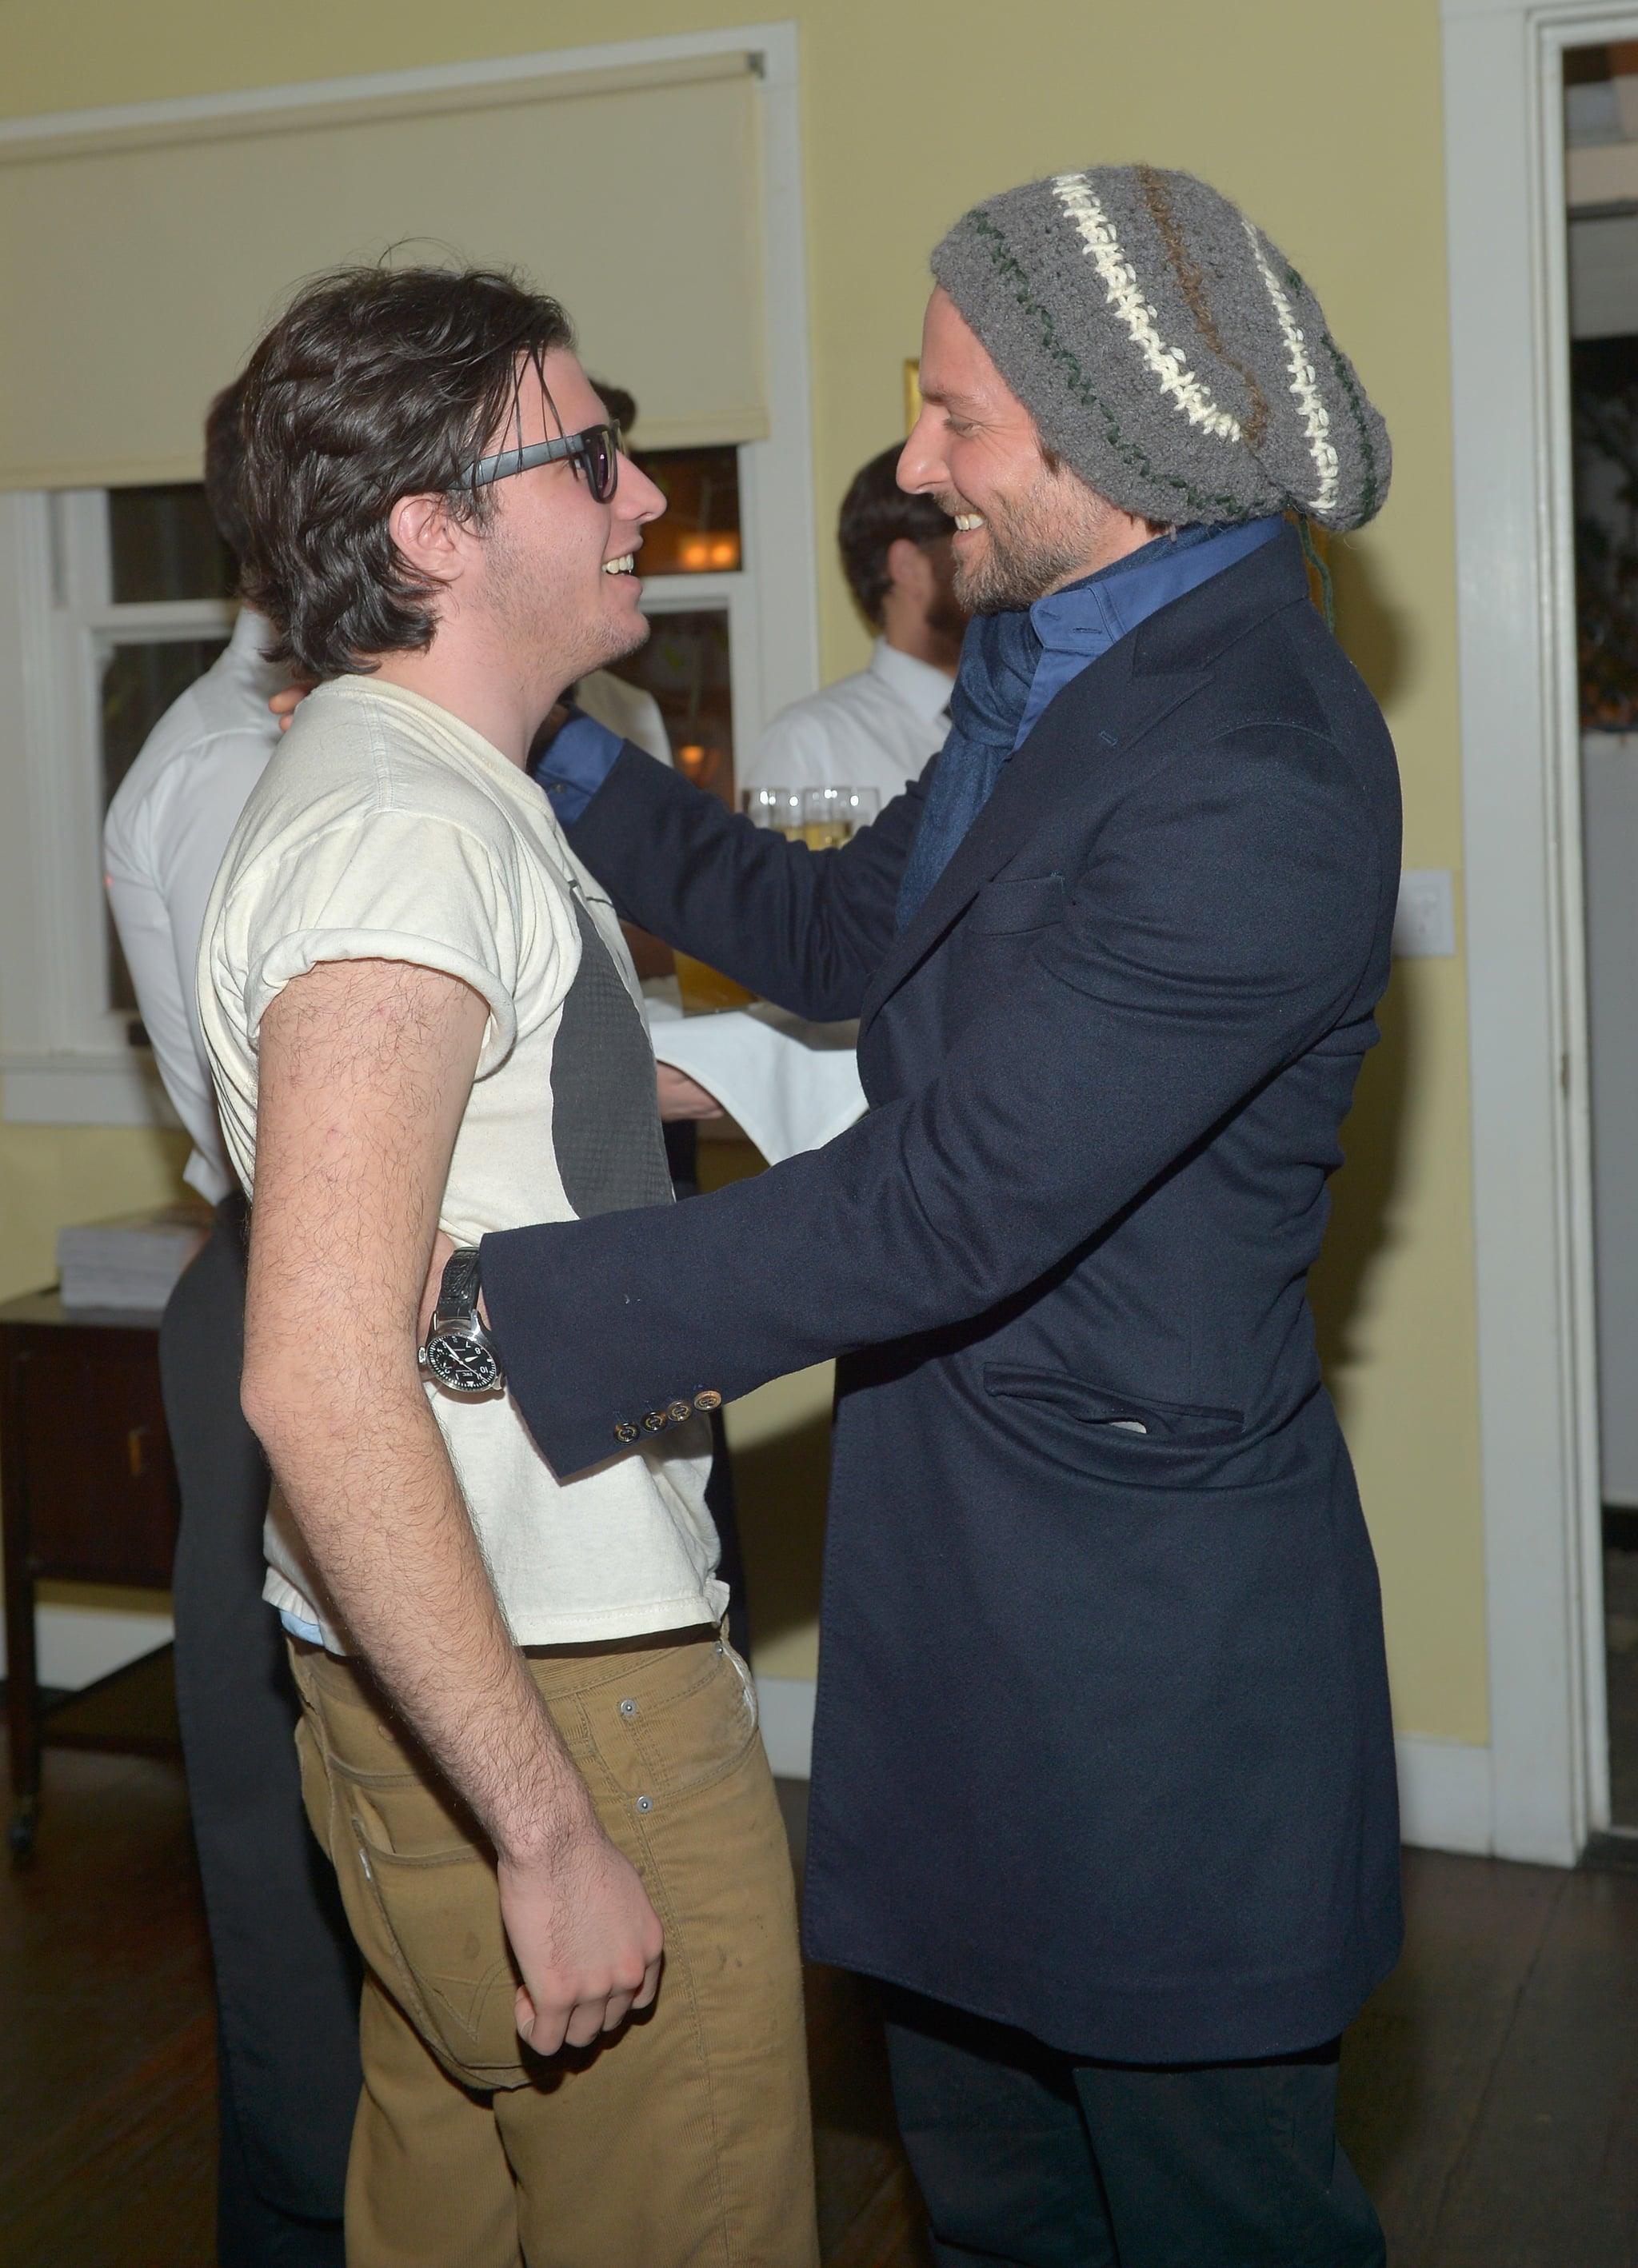 Bradley Cooper linked up with his director David O. Russell's son at a Vanity Fair bash for Silver Linings Playbook in LA on Wednesday night.